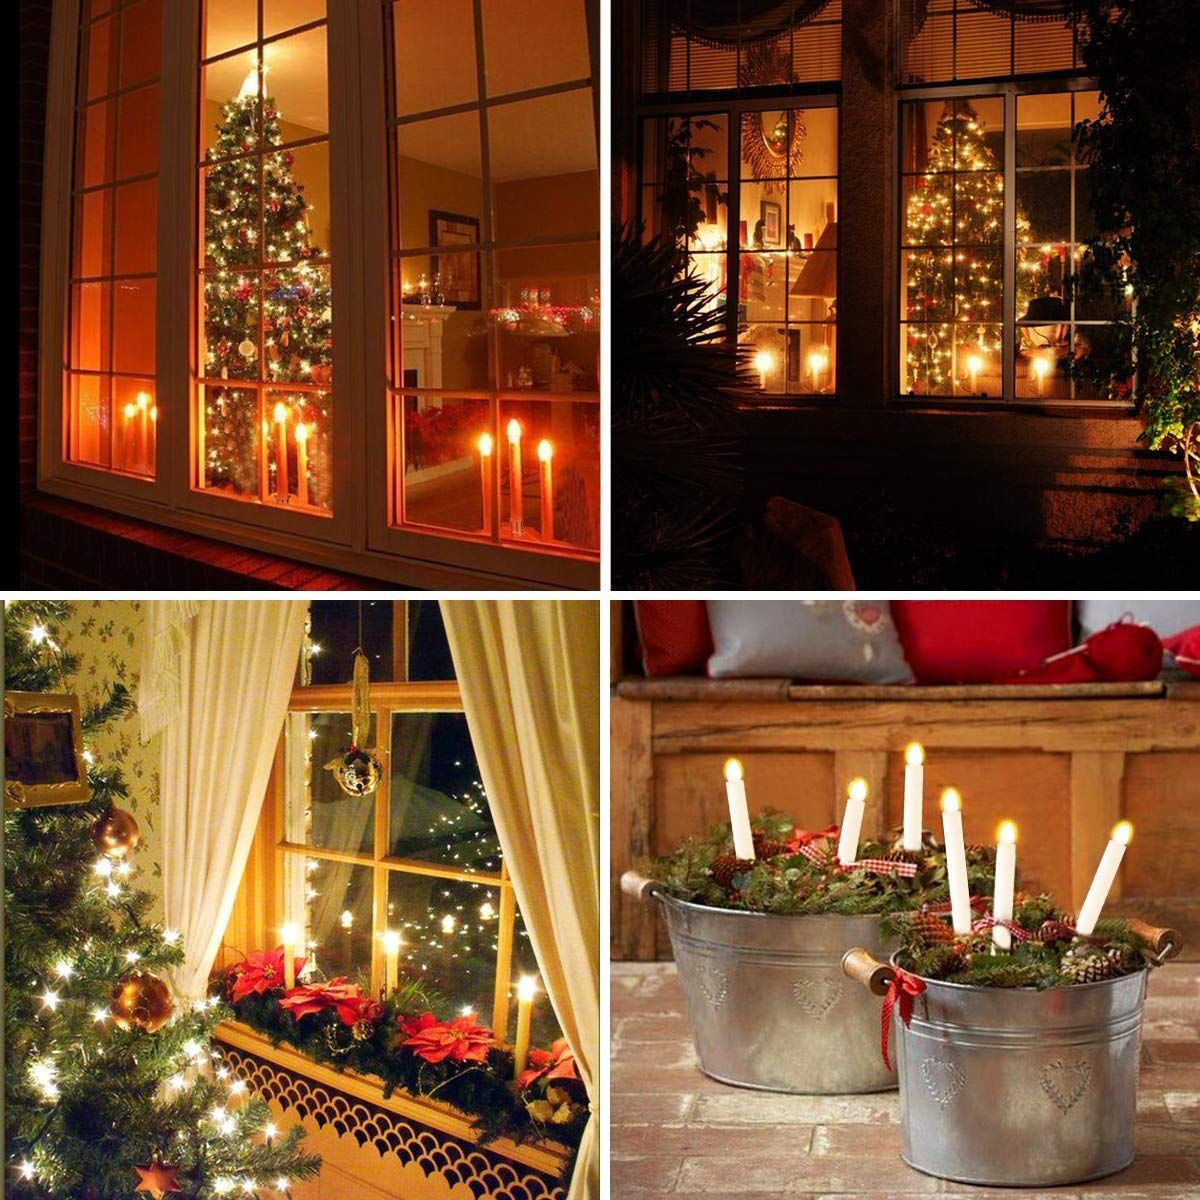 Amazon Com Christmas Window Candles Lights Yunlights 12 Pack Battery Operated Fl Window Candle Lights Christmas Window Candle Lights Christmas Window Candles